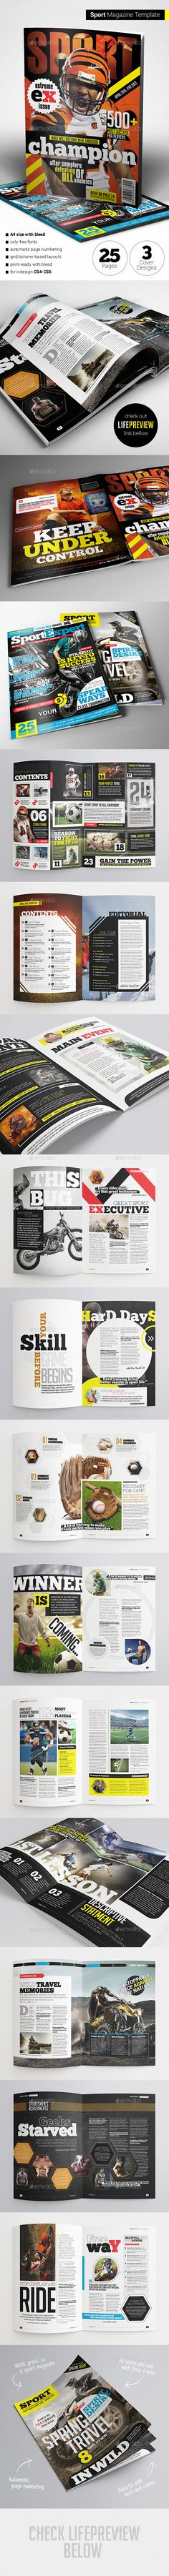 Sport Magazine Template #design #journal Download: http://graphicriver.net/item/sport-magazine/11365002?ref=ksioks